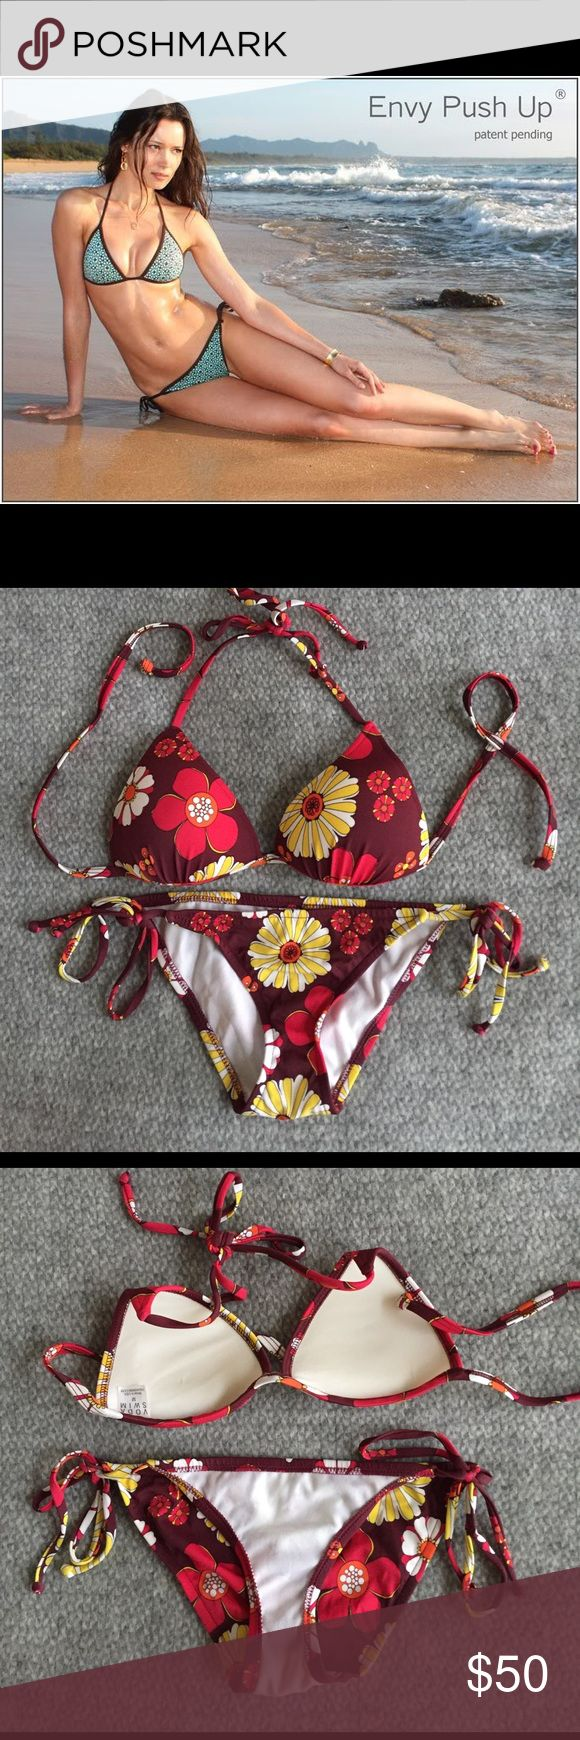 🌿Voda Swim🌿 Beautiful, sexy bikini by Voda Swim (google to get more info) in like new condition. 1 to 2 Cup Sizes Bigger! Looks just like a regular bikini. Gives breasts amazing cleavage, lift and support. Very low water absorbency. No sagging when wet. No under wiring. Refer to sizing pic. Both top and bottom are a Medium but it fits like a Small for bottom and A/B cup on top. Side strings are adjustable not fixed. Fee free to ask questions. Cross posted 🌿Ⓜ️🌿 Voda Swim Swim Bikinis